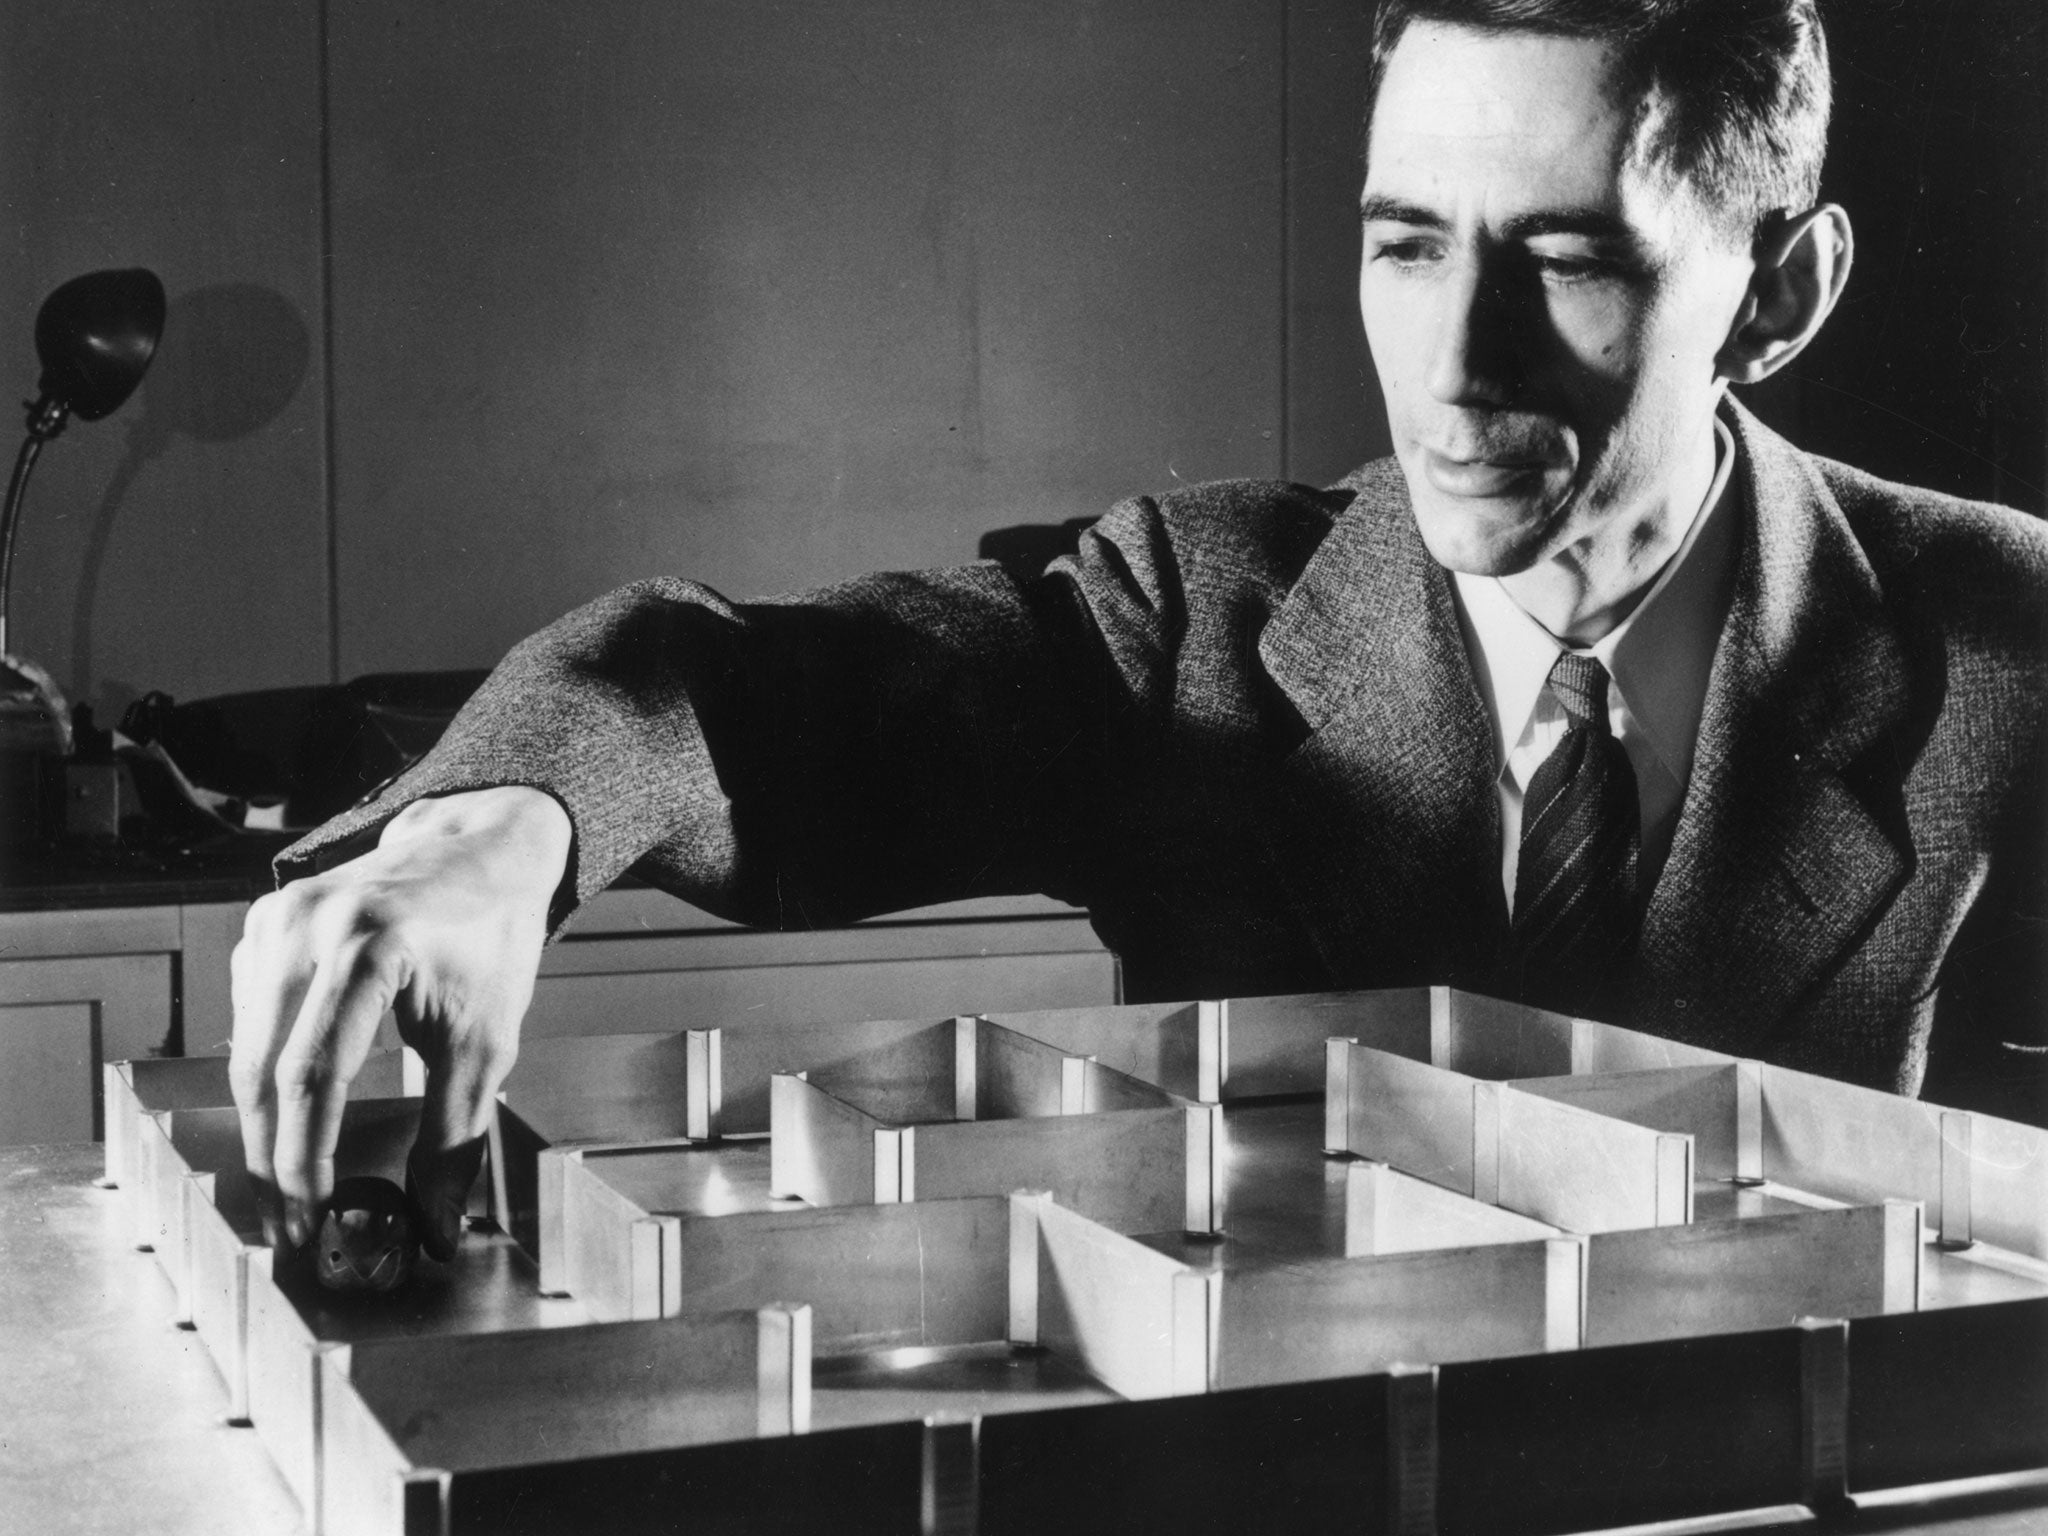 Dr. Claude Shannon, the genius you've never heard about whose intellect was on par with Einstein.